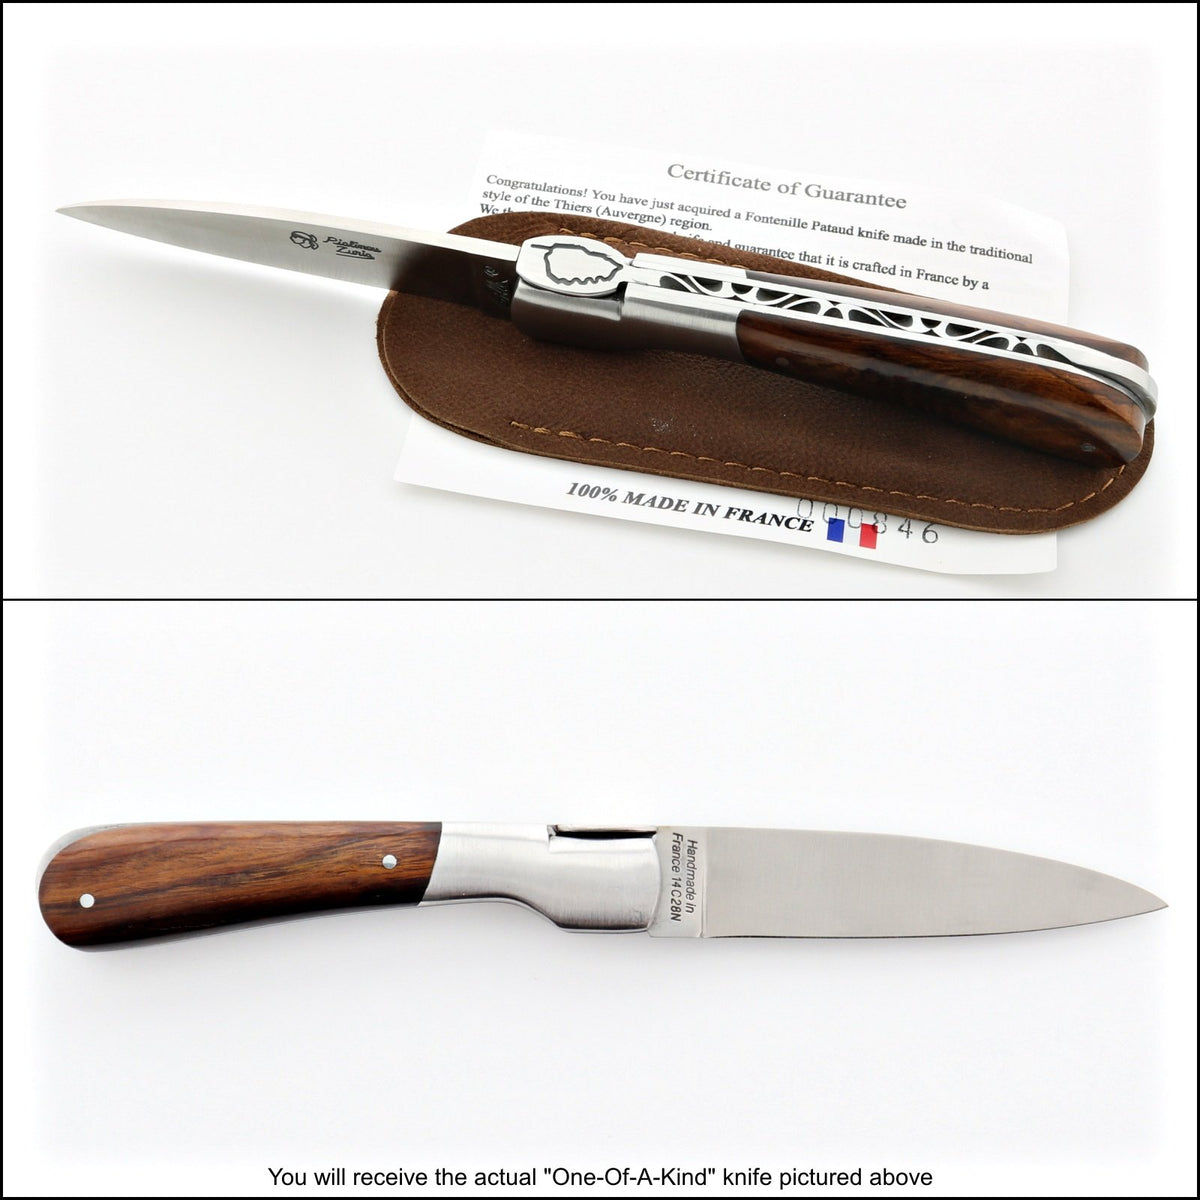 Corsican Pialincu Folding Knife Ironwood Handle-POCKET KNIFE